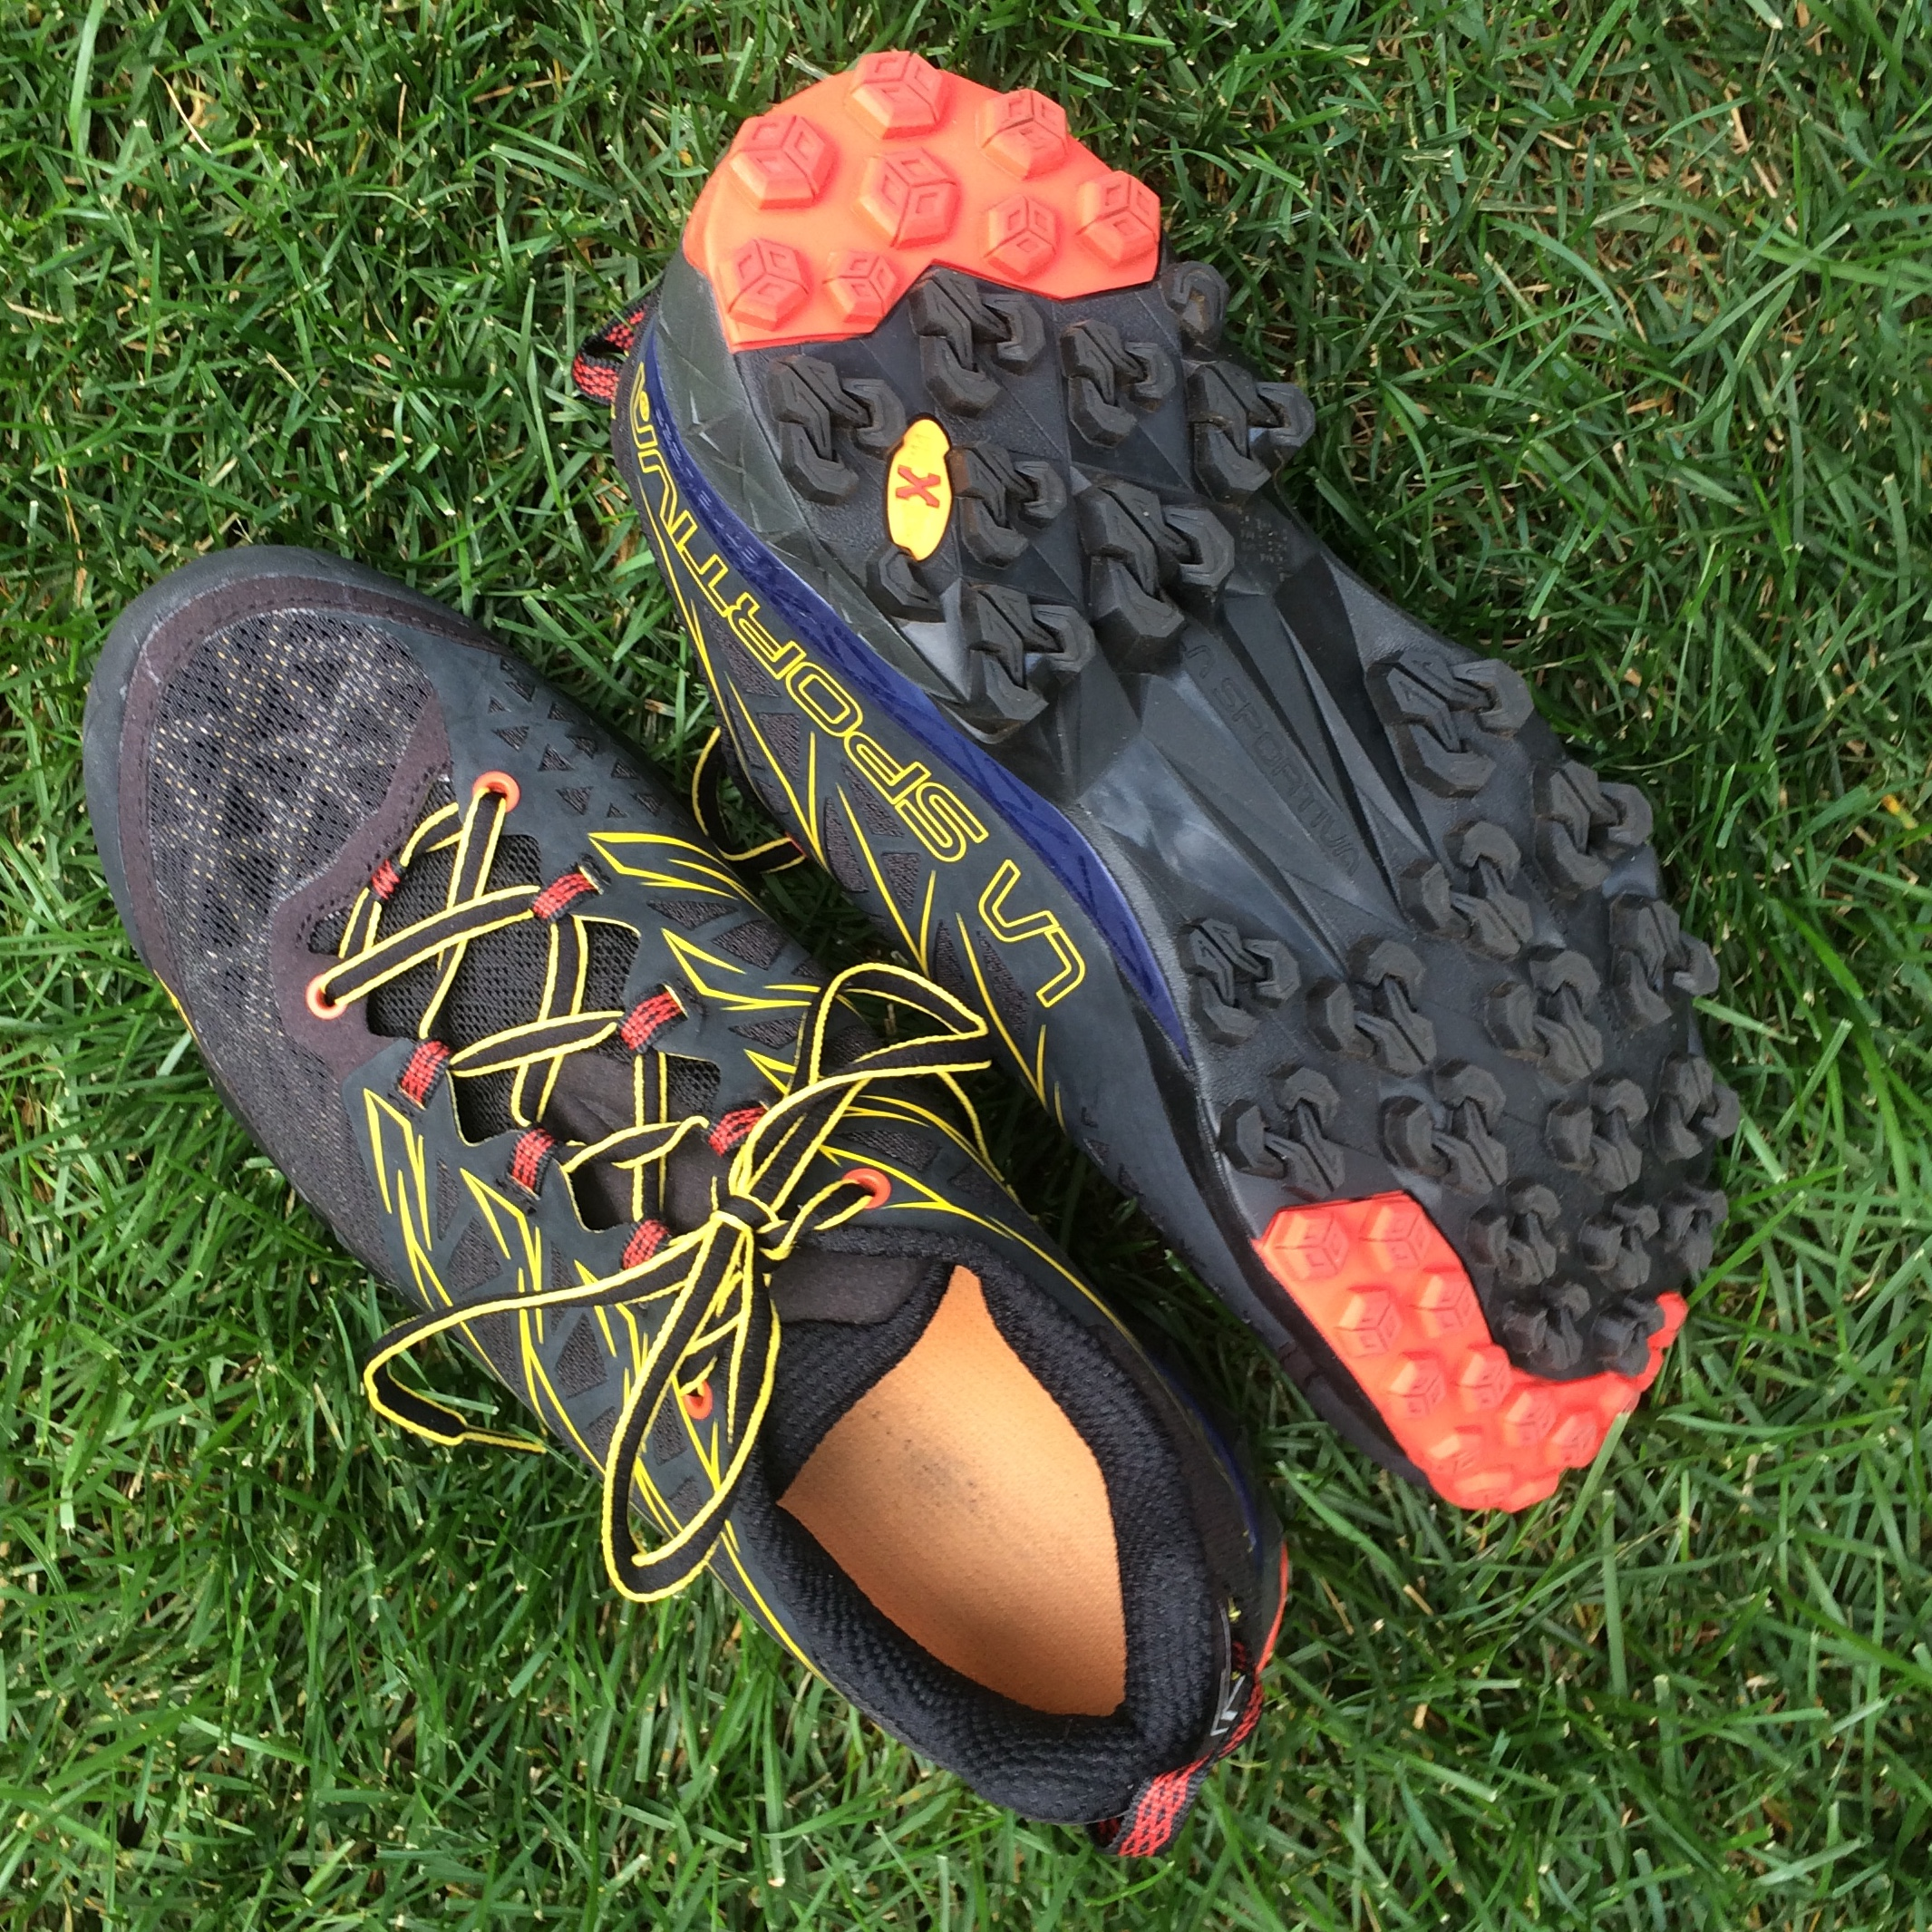 La Sportiva uses a patented rubber sole to make the Akyra responsive in uneven and wet terrain.